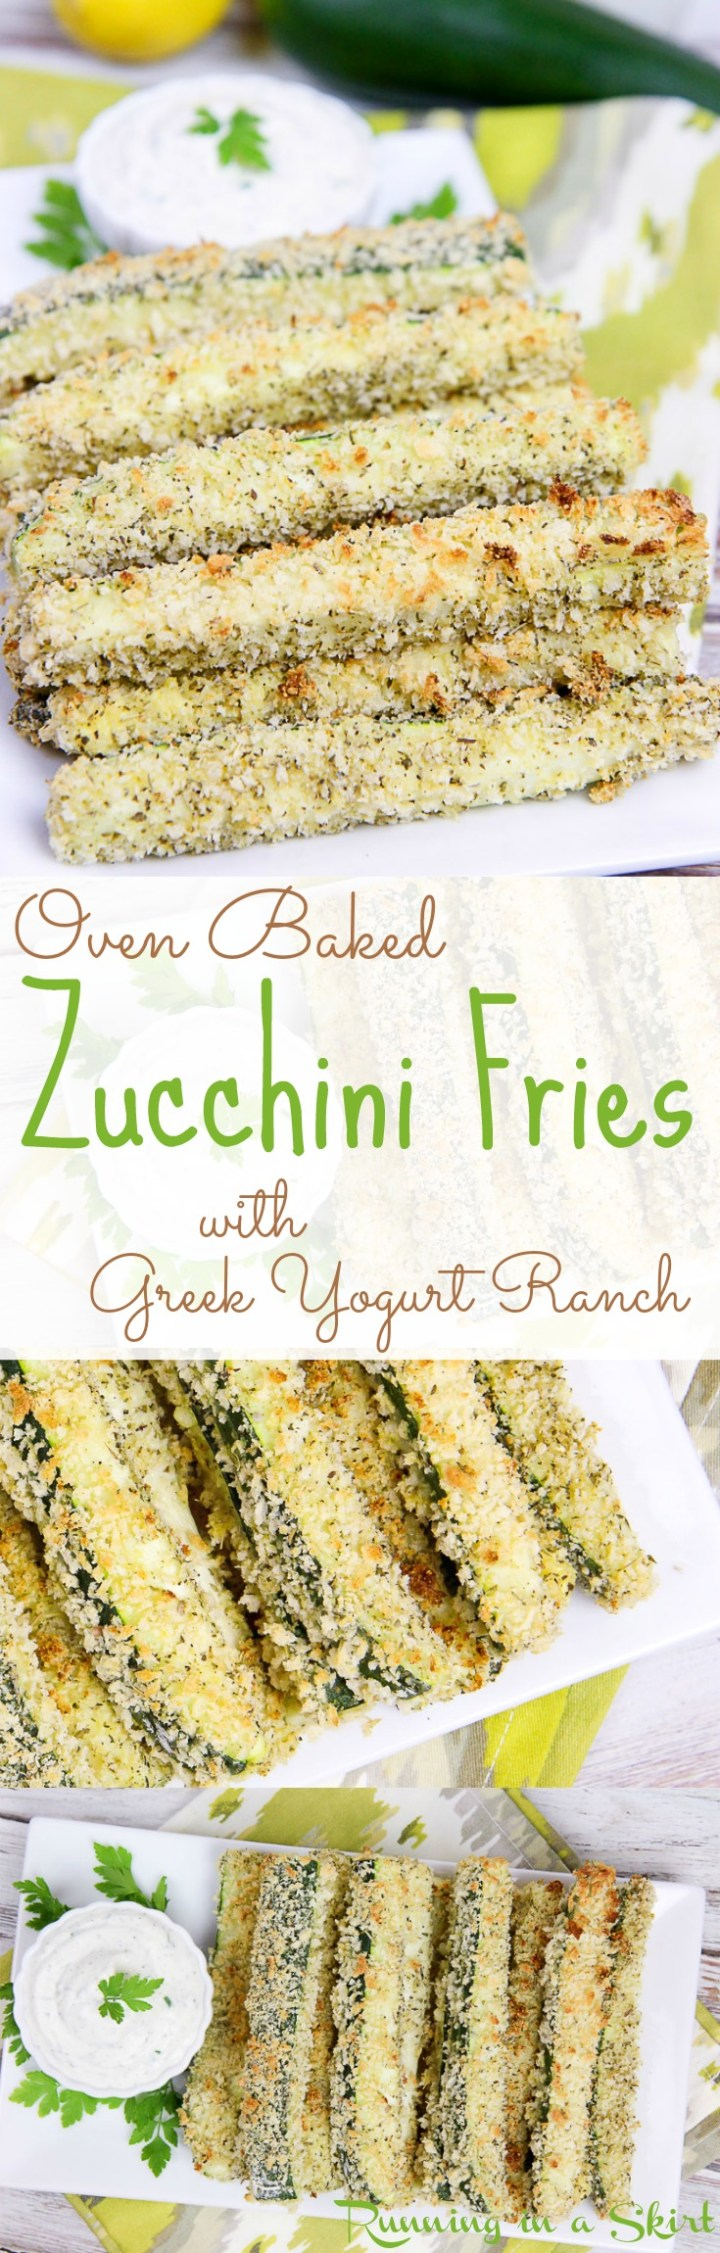 ed Zucchini Fries with greek yogurt ranch